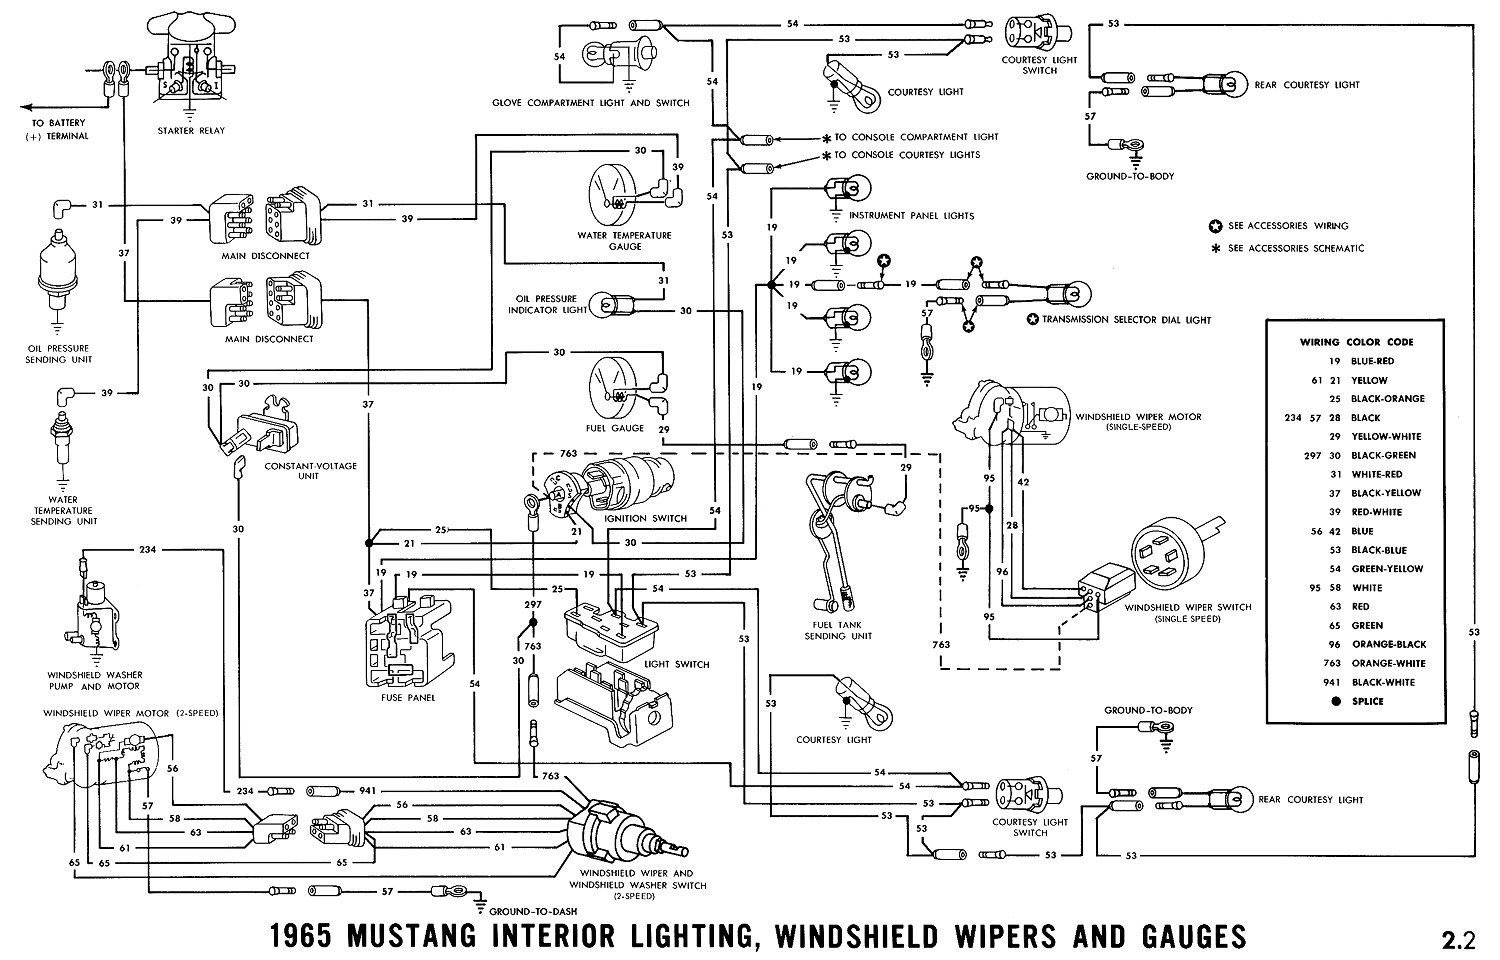 1965g 1965 mustang wiring diagrams average joe restoration 1965 mustang heater wiring diagram at cos-gaming.co